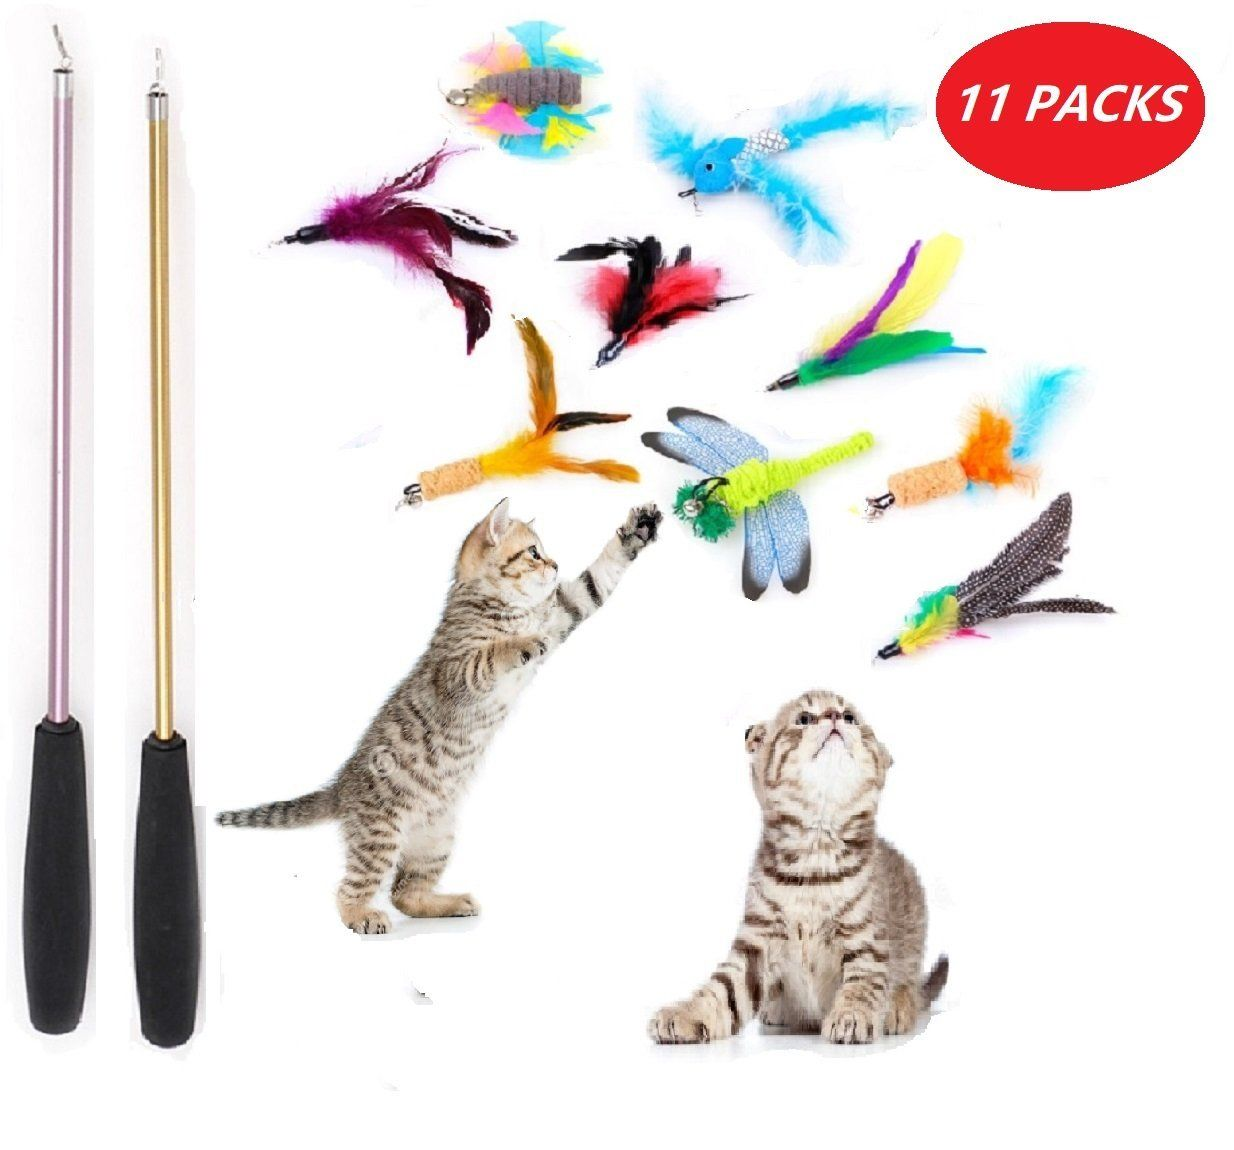 11 Refill Cat Toys Interactive 2 Wands Cat Toy Wand Cat Feather Toy Cat Toy Assortment Cat Interactive Toys Cat Cat Toys Cat Carrier Pet Toys